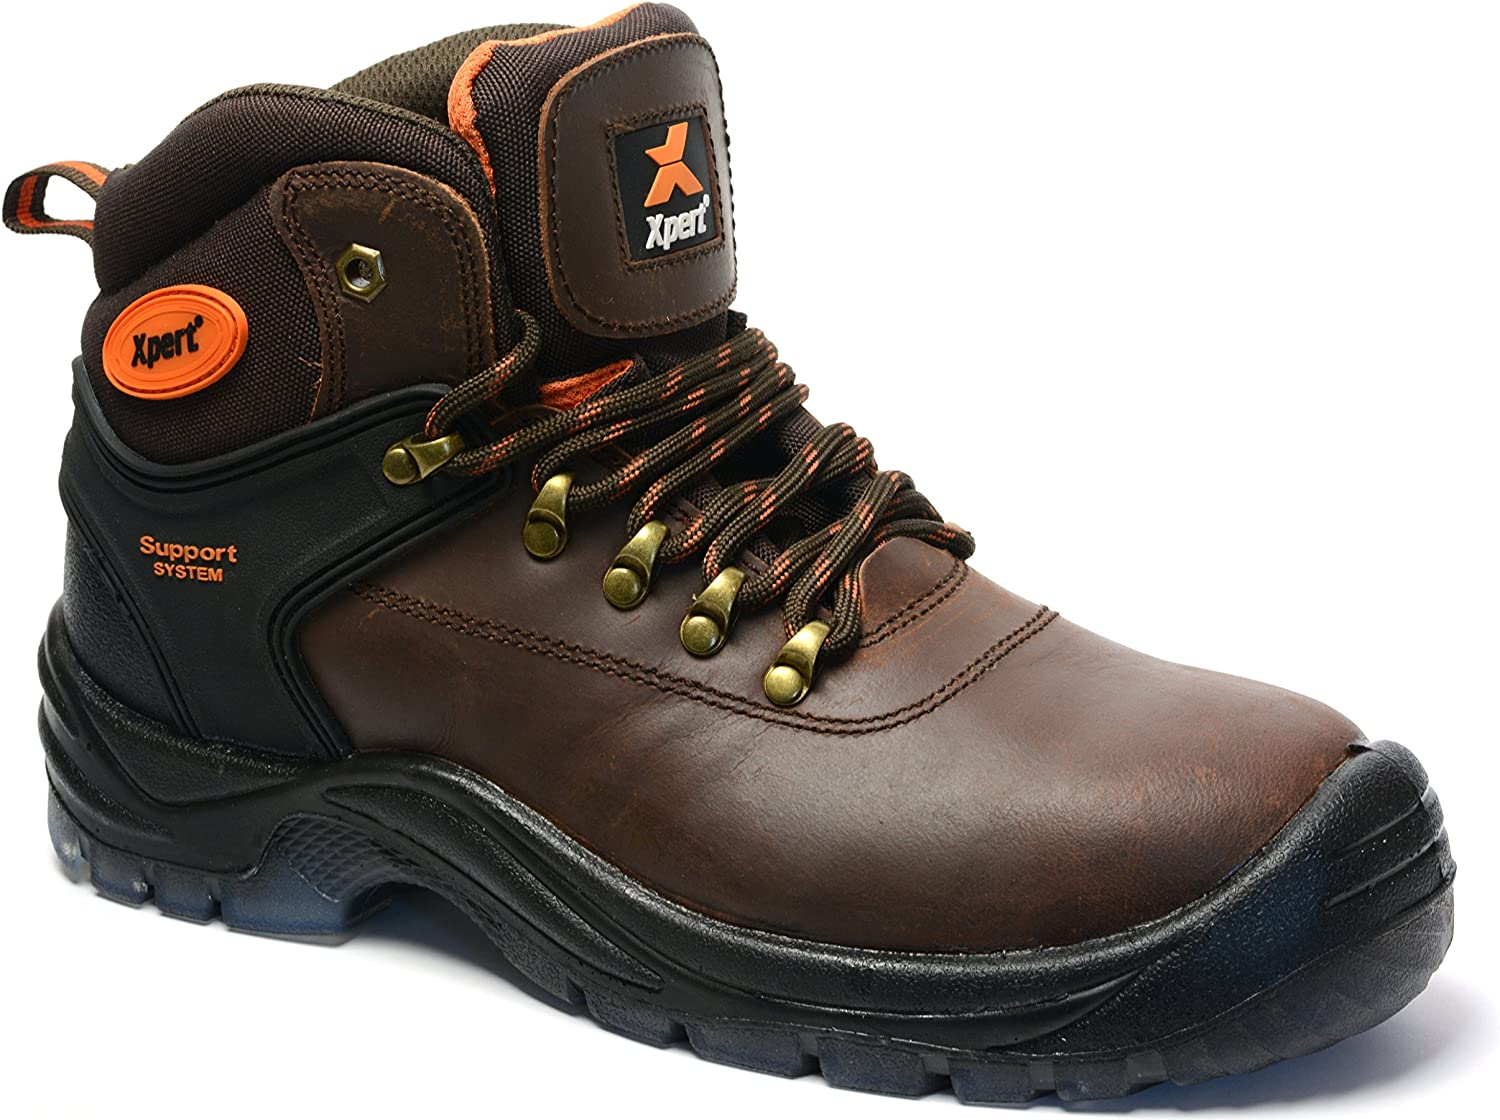 Xpert XP510 Warrior SBP Mens Brown Safety Hiker Steel Toe Safety Boots